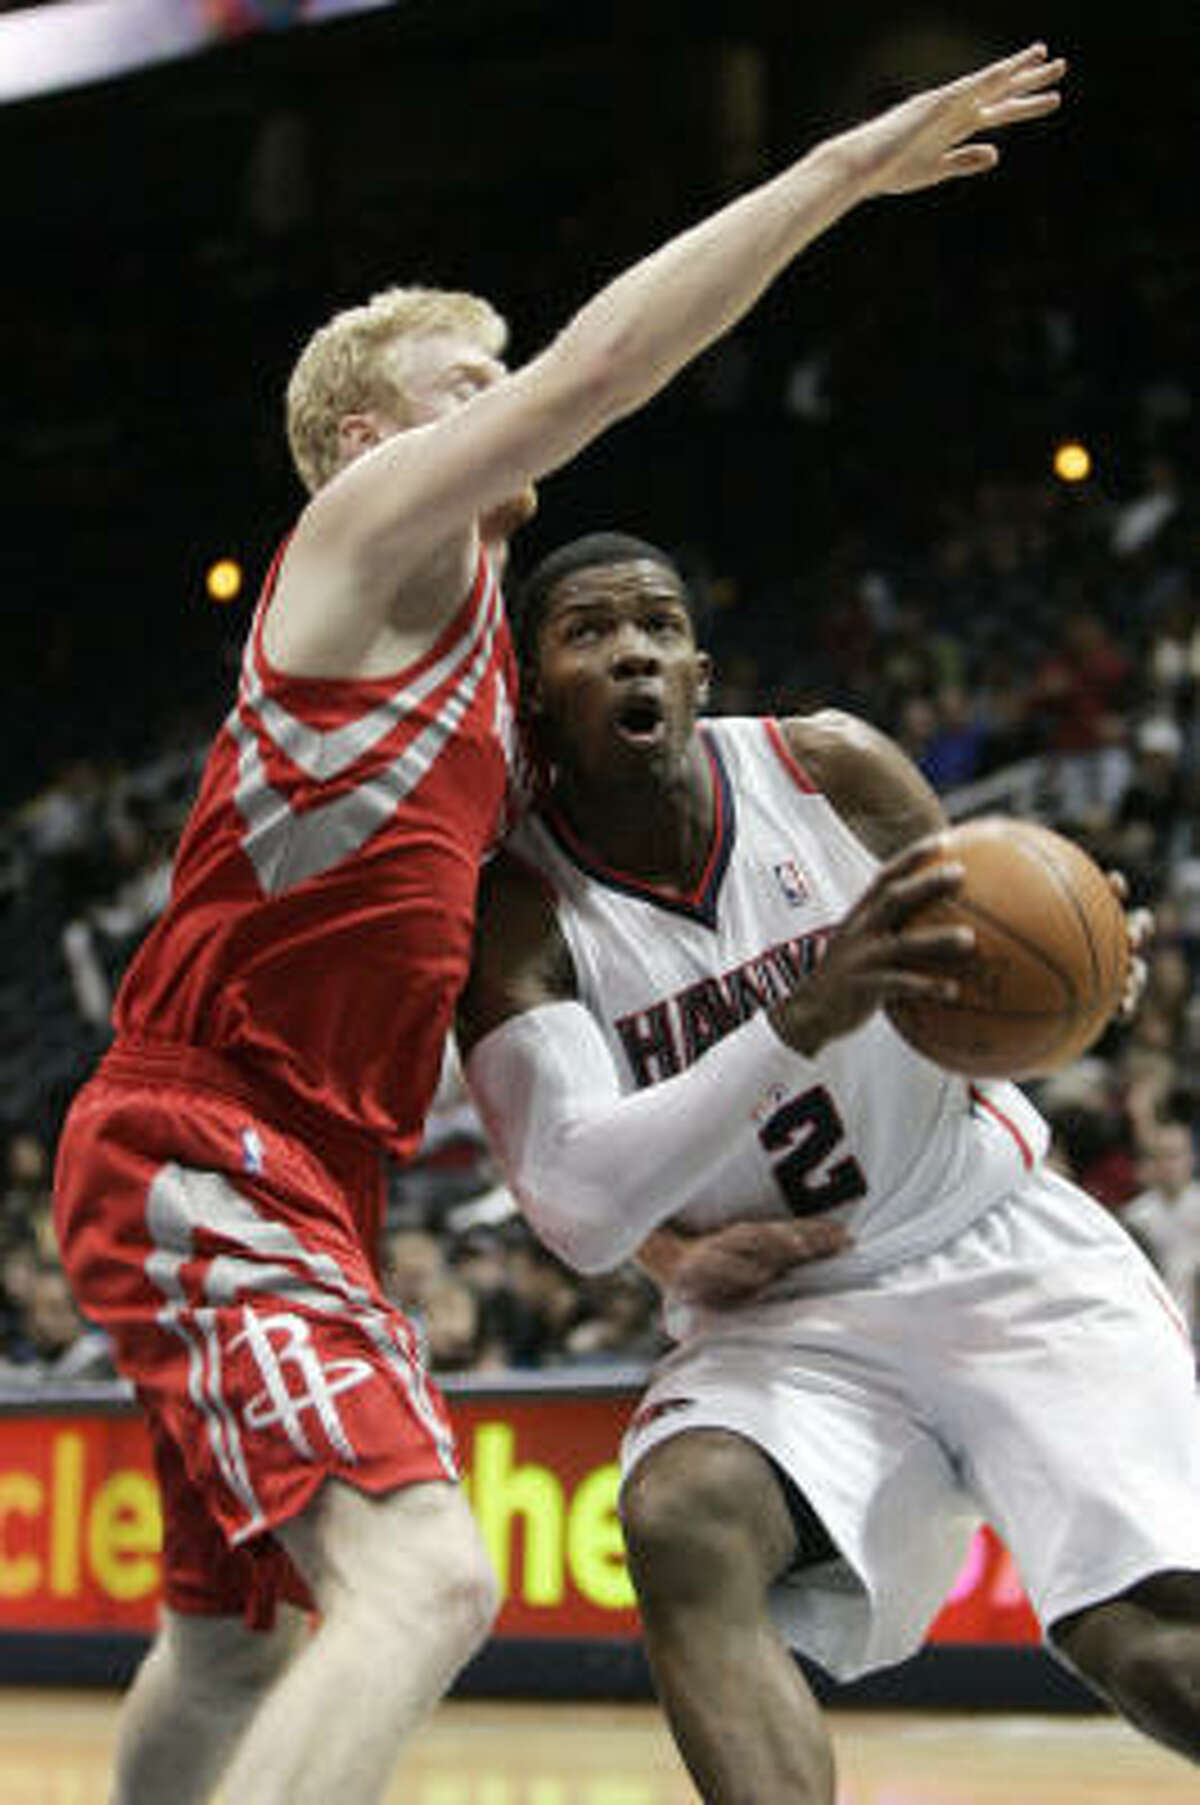 Hawks guard Joe Johnson (2) tries to drive past Rockets forward Chase Budinger. Johnson finished with a game-high 30 points.